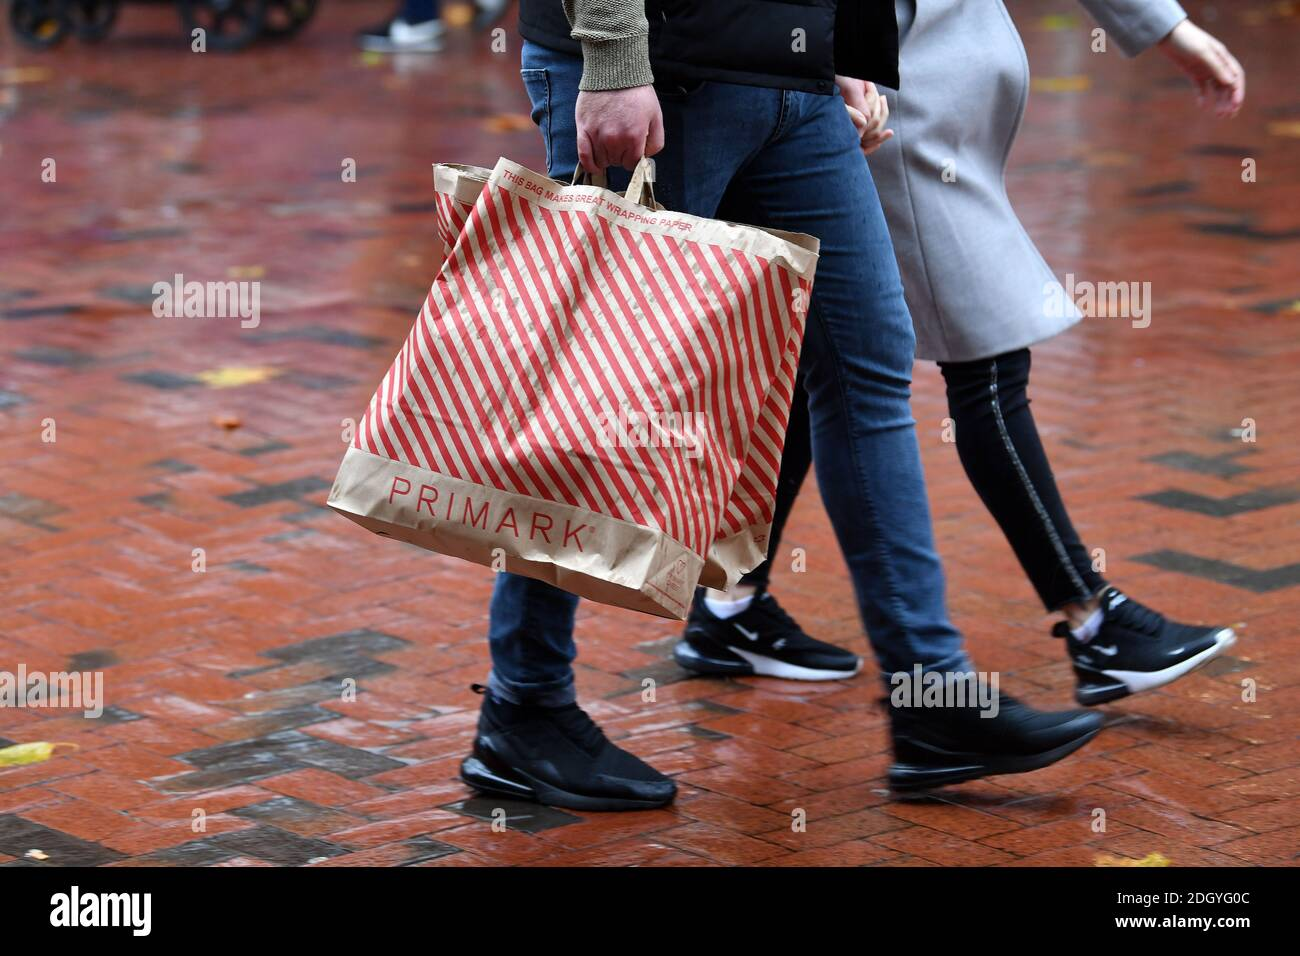 Scenes around Broad Street, Reading, Berkshire, the day after Lockdown 2 ends, Thursday 3rd December 2020. Stock Photo